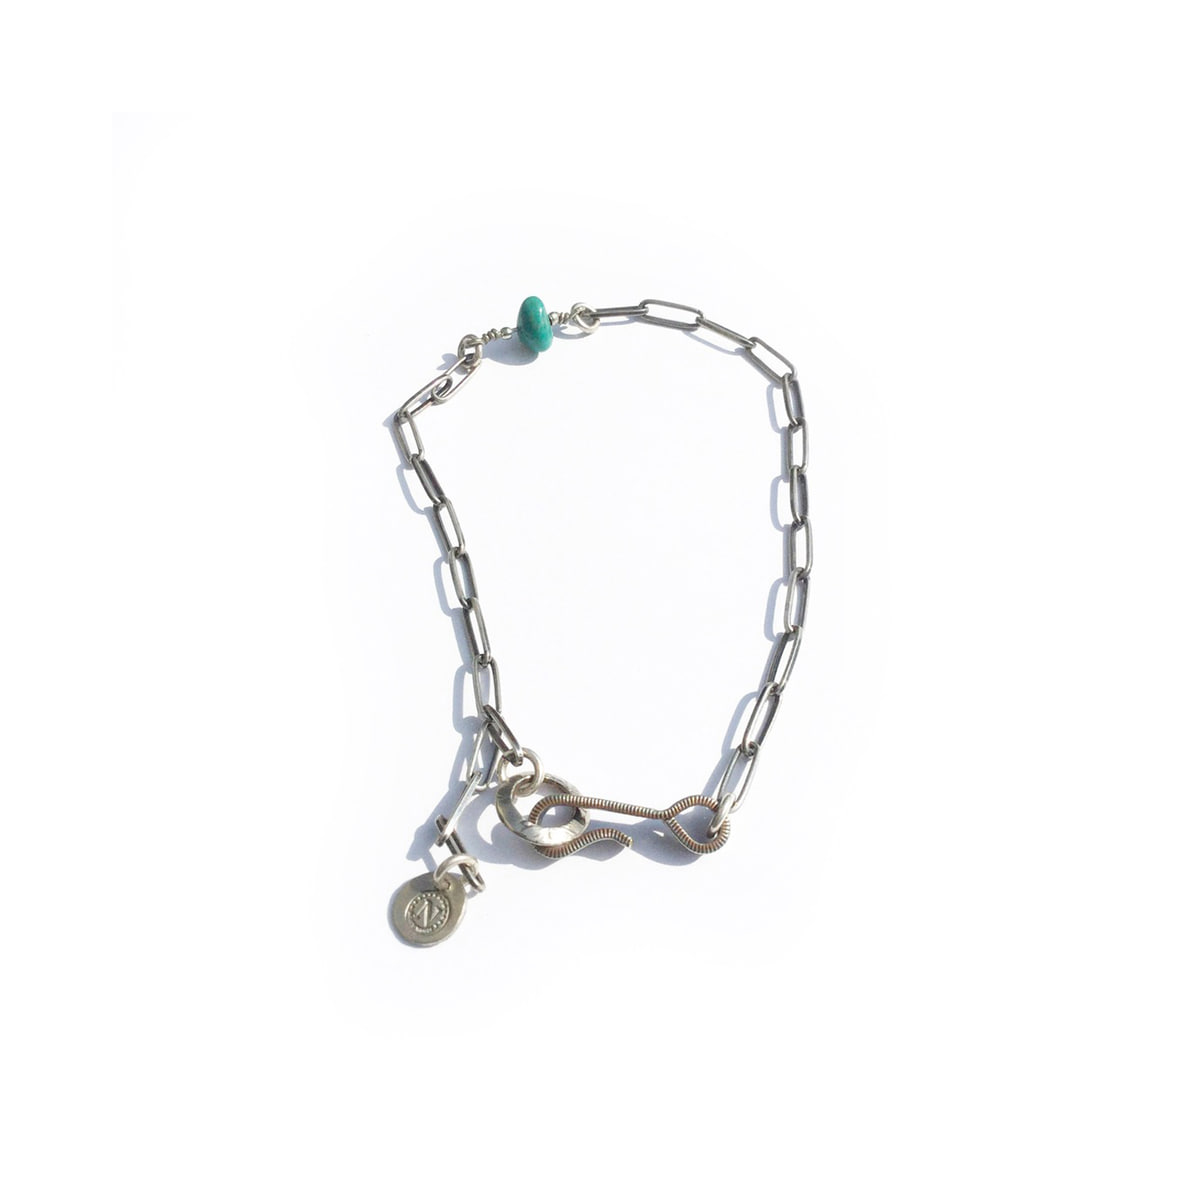 [NORTH WORKS] NICKEL 10¢HOOK NAVAJO CHAIN ANKLET 'N-317'